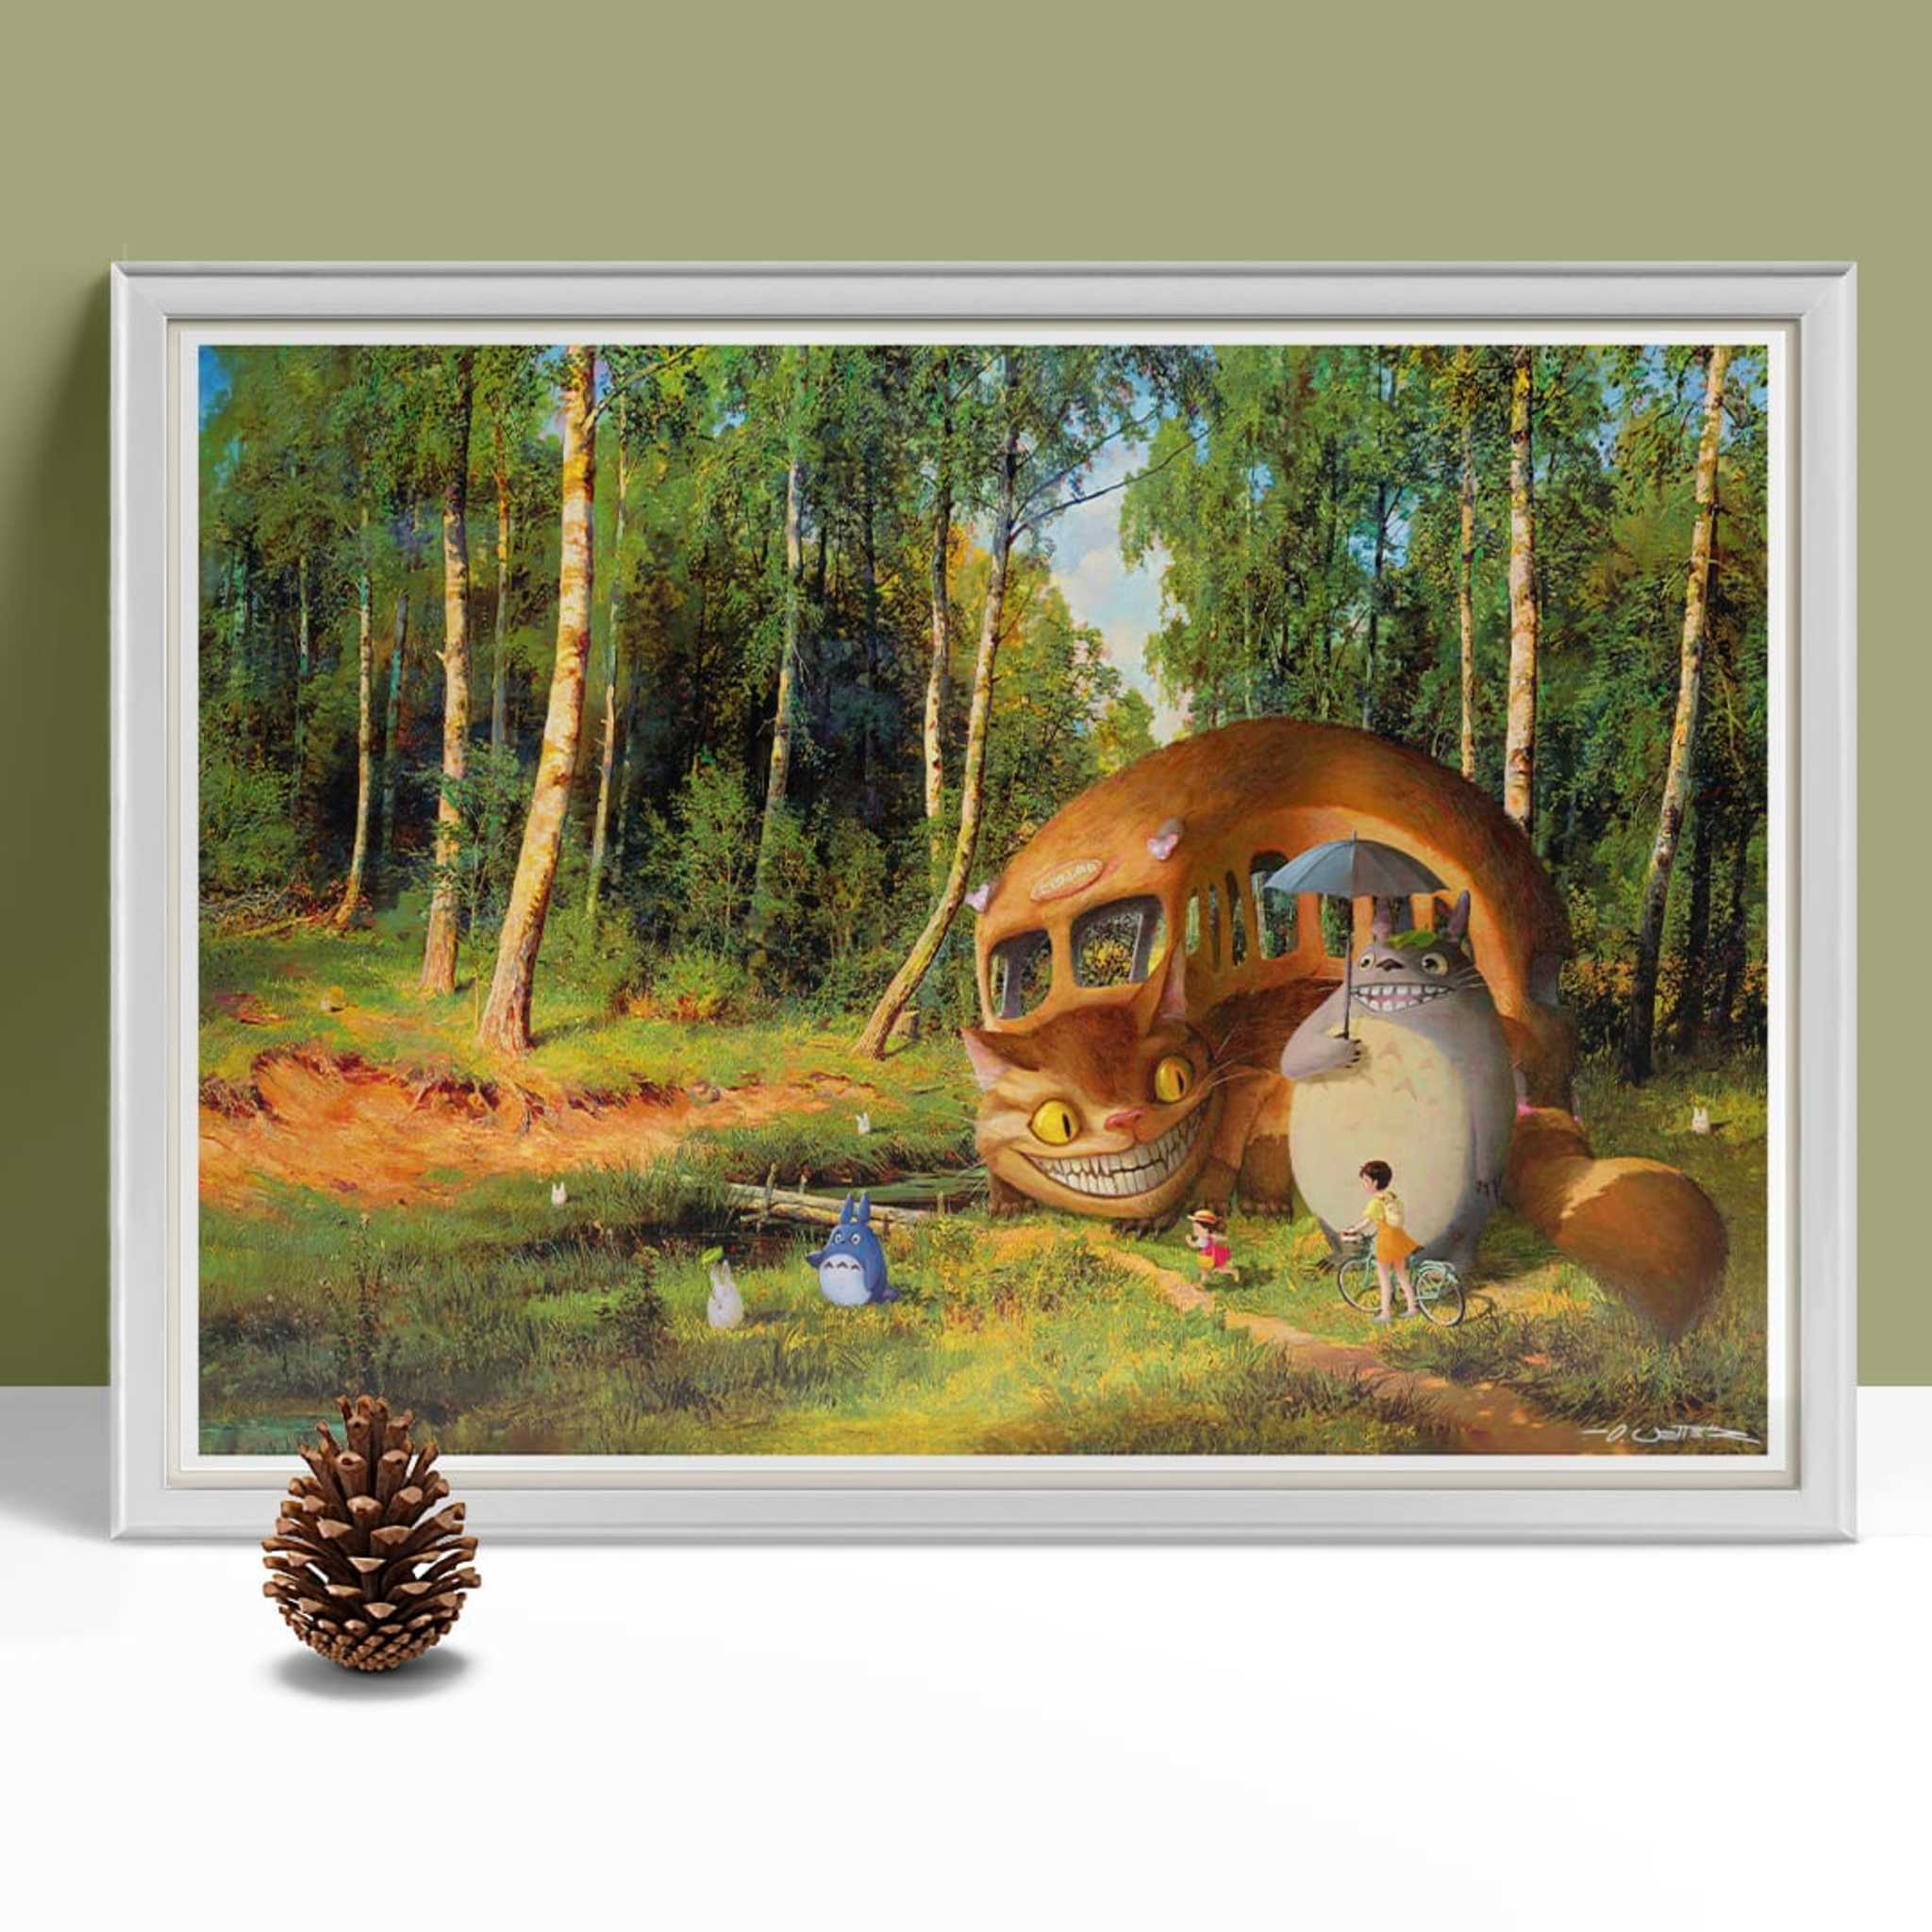 Totoro at the forest framed 2